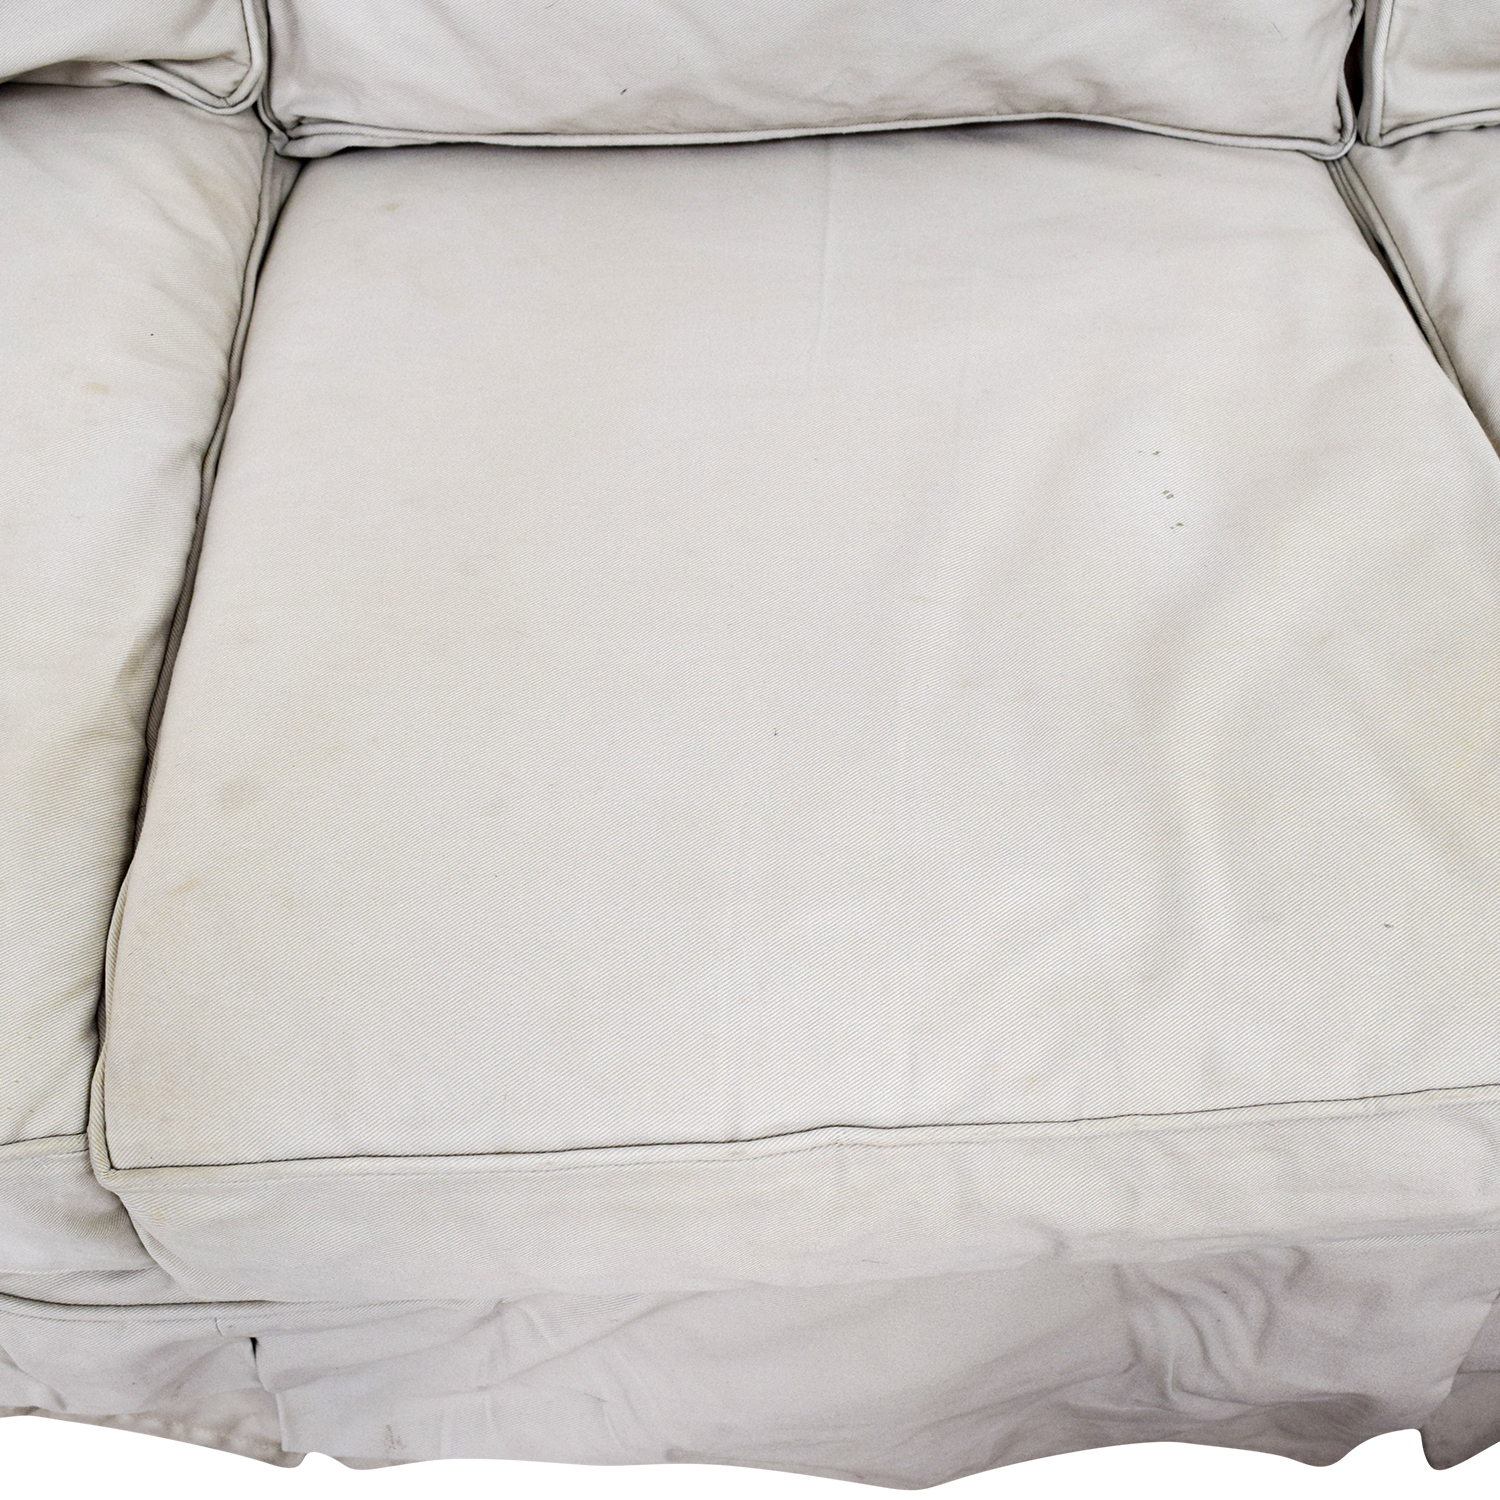 Superb Ottoman Secondhand Off Pottery Barn Pottery Barn Basic Slipcovered Sofa Pottery Barn Slipcovers Reviews Pottery Barn Slipcovers Room Chairs Pottery Barn Pottery Barn Basic Slipcovered Sofa houzz-03 Pottery Barn Slipcovers